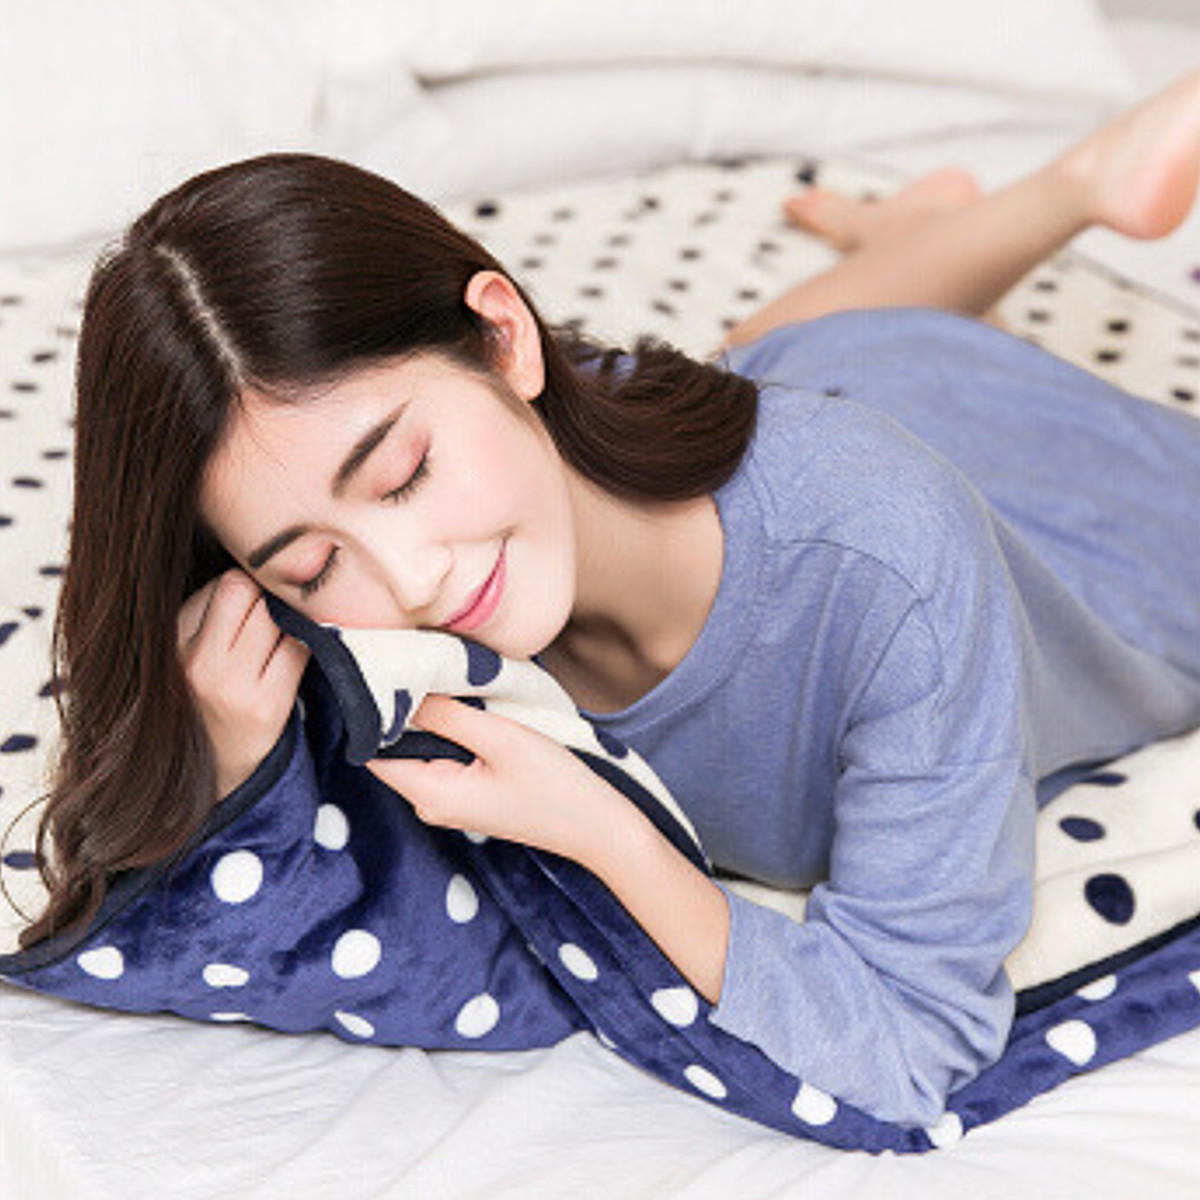 80x50cm USB Electric Heater Warming Heating Blankets Pad Heated Shawl Removable Home Office Winter Warm Blanket Bed Sofa Warmer